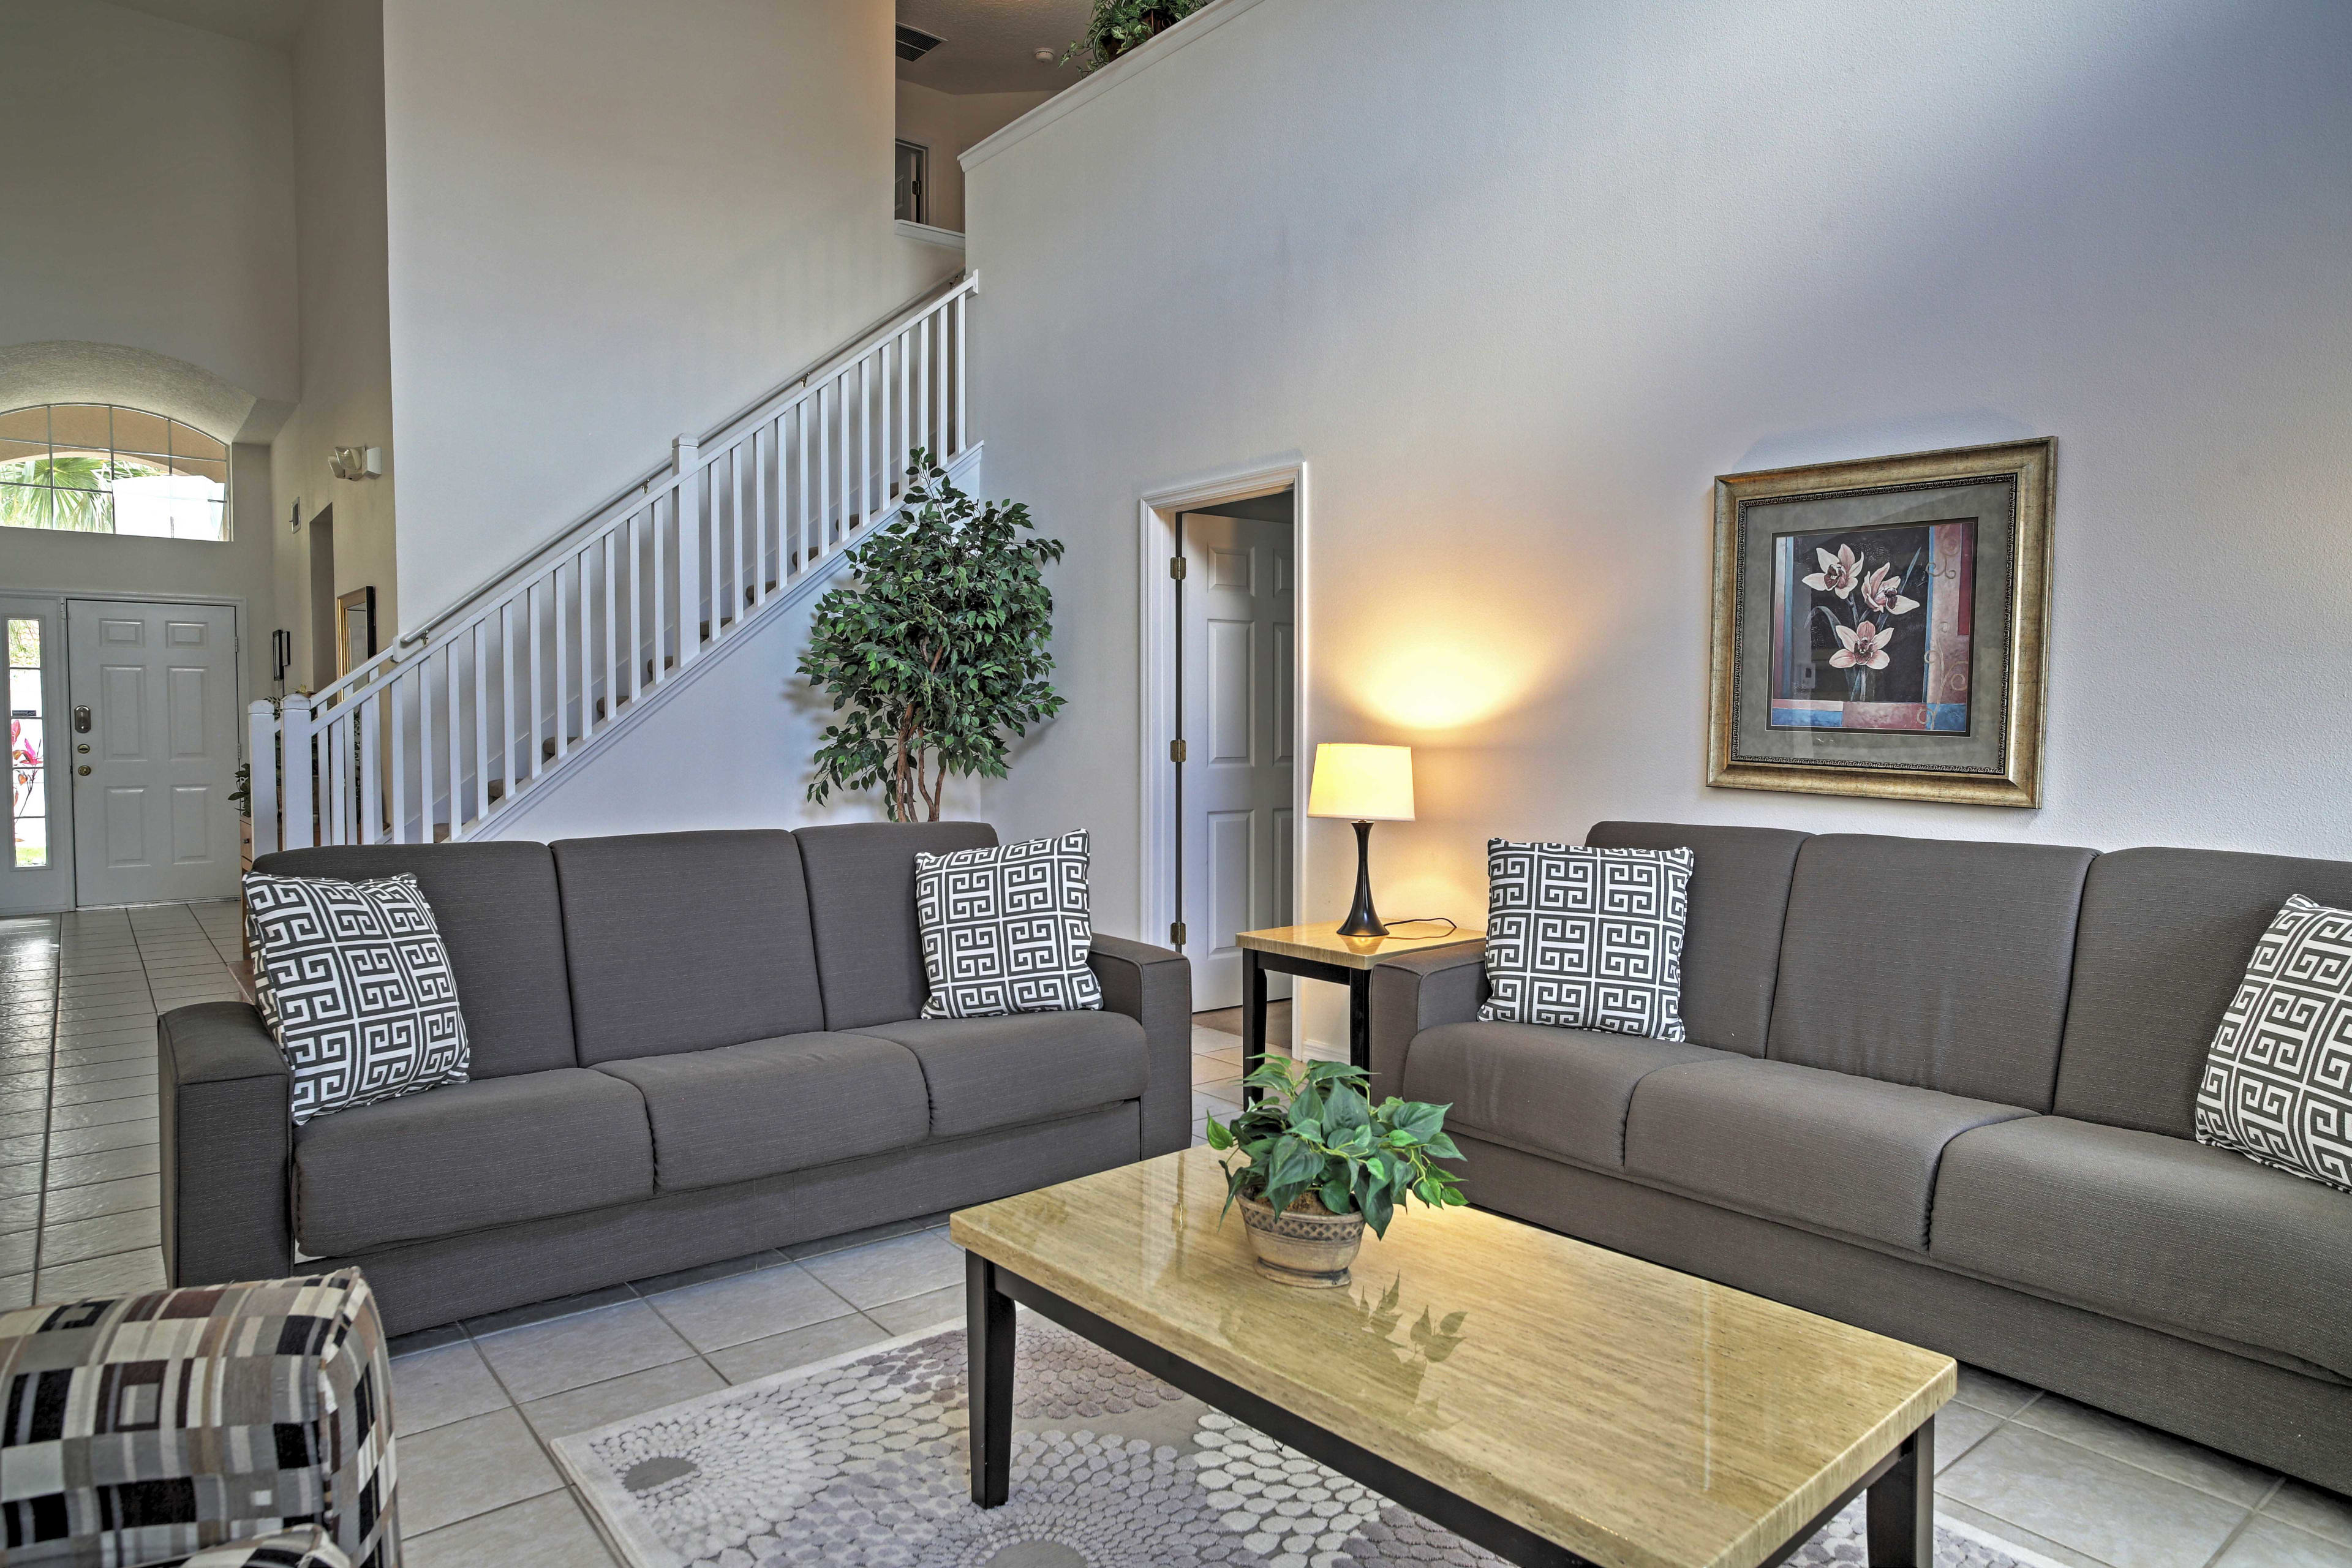 Unwind on the plush sofas and settle in!